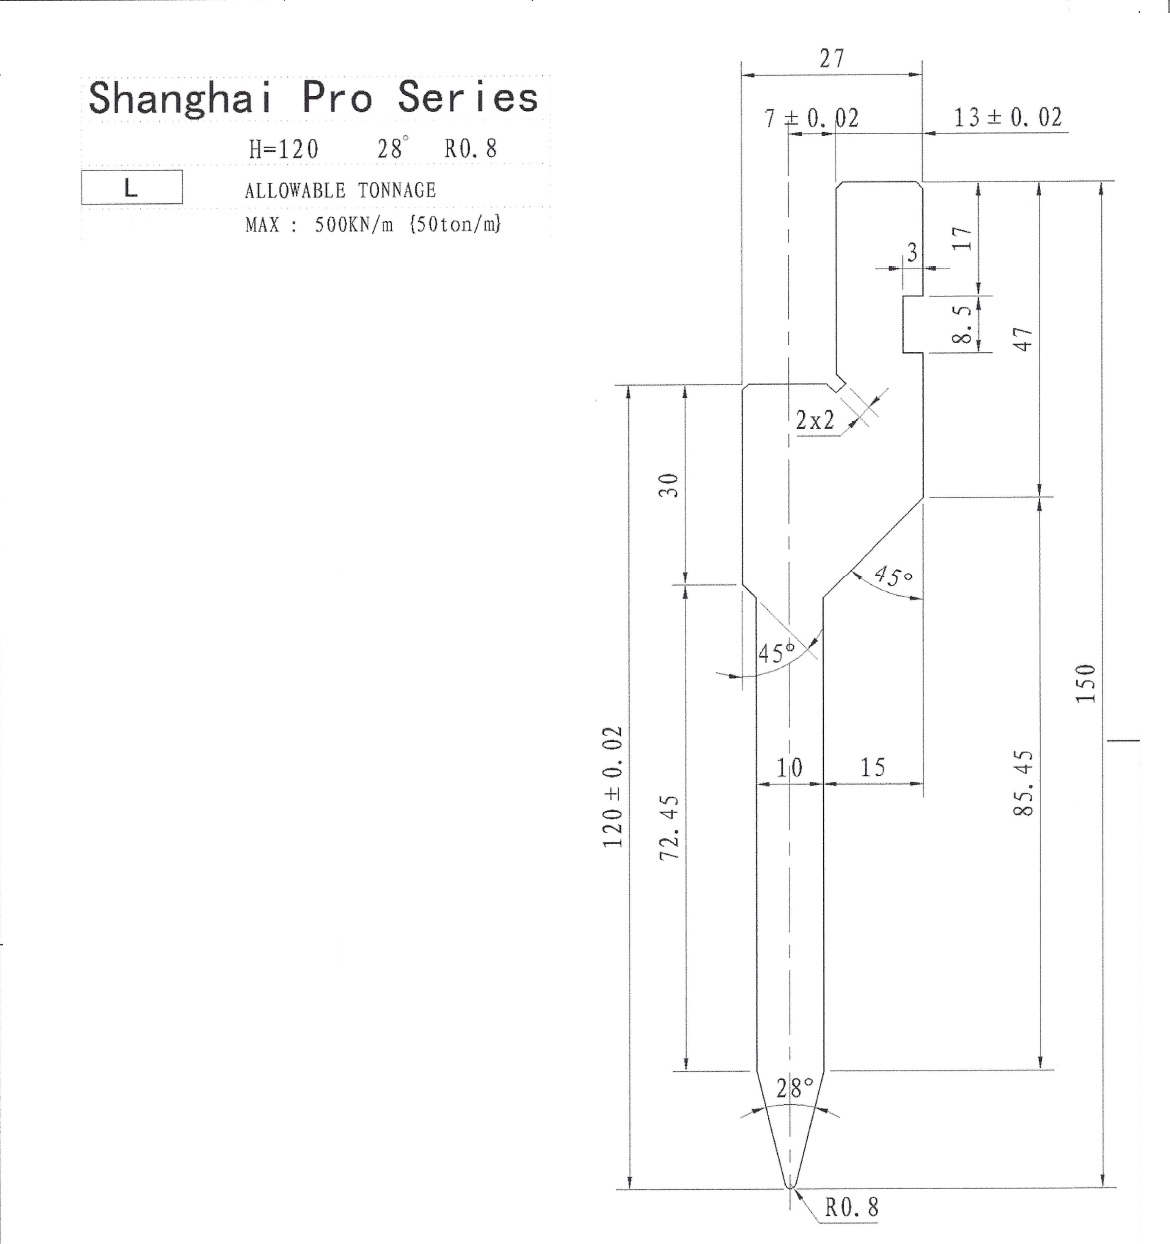 https://crm.appliedmachinery.com.au/uploads/Stocks/images/Shanghai-Pro-LM-Punch-28-Segmented-92933a.jpg